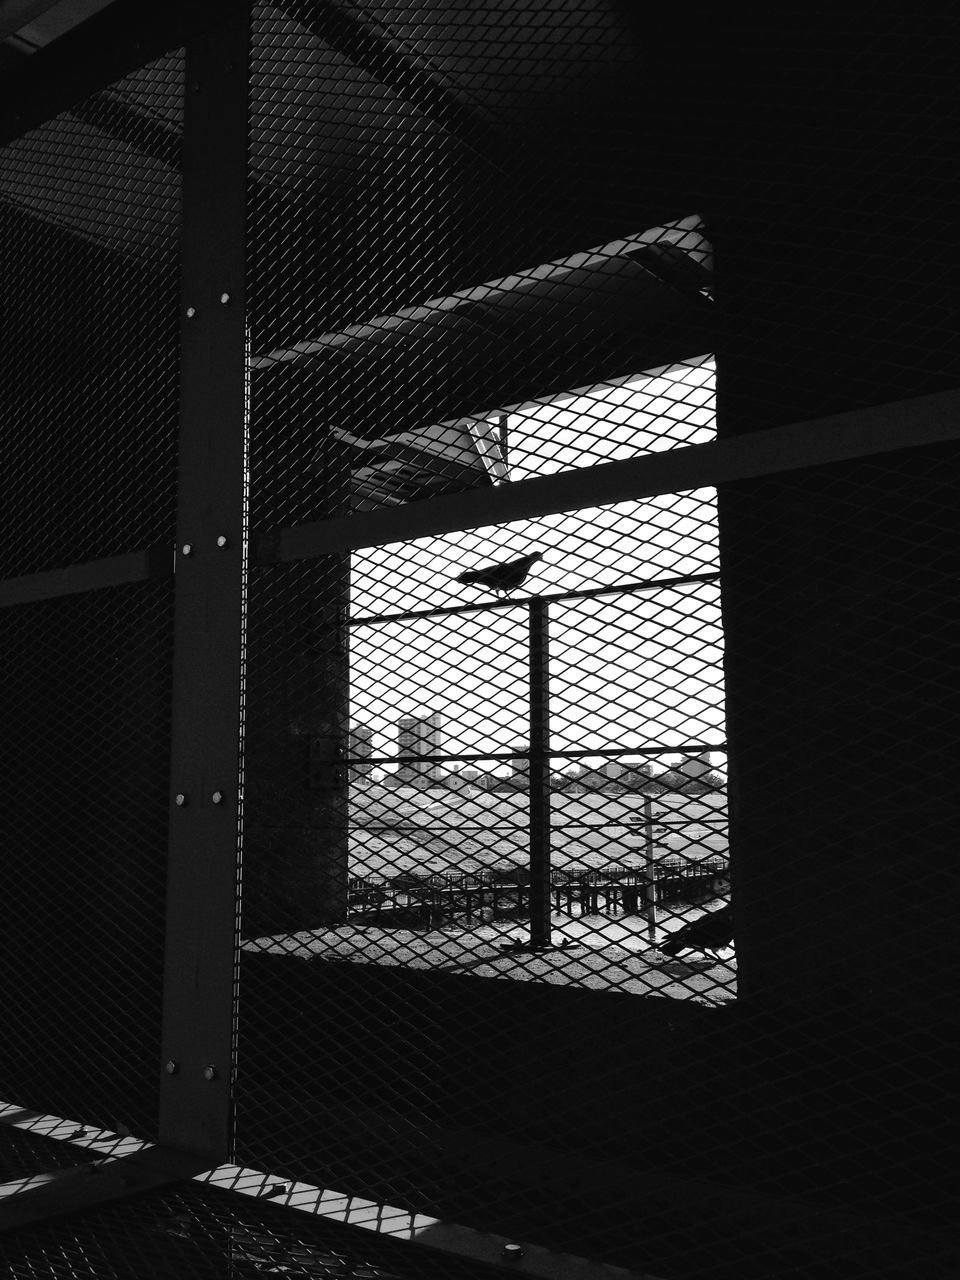 indoors, window, architecture, built structure, pattern, glass - material, safety, shadow, protection, sunlight, transparent, no people, metal, building exterior, day, security, geometric shape, design, closed, fence